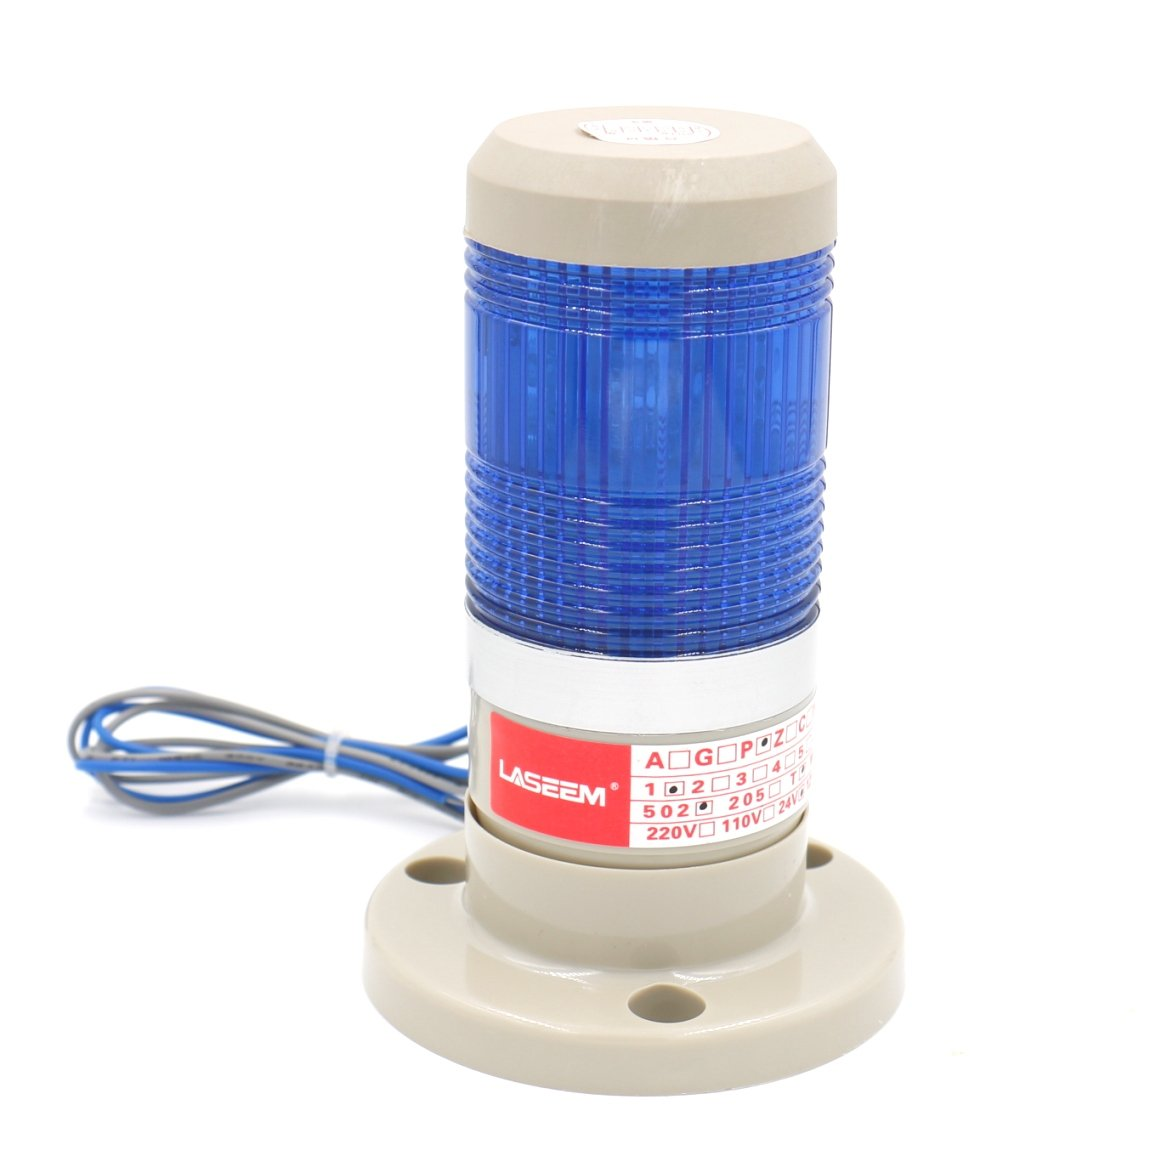 Baomain Warning Stack Light 110V AC Industrial Blue LED Signal Tower Lamp